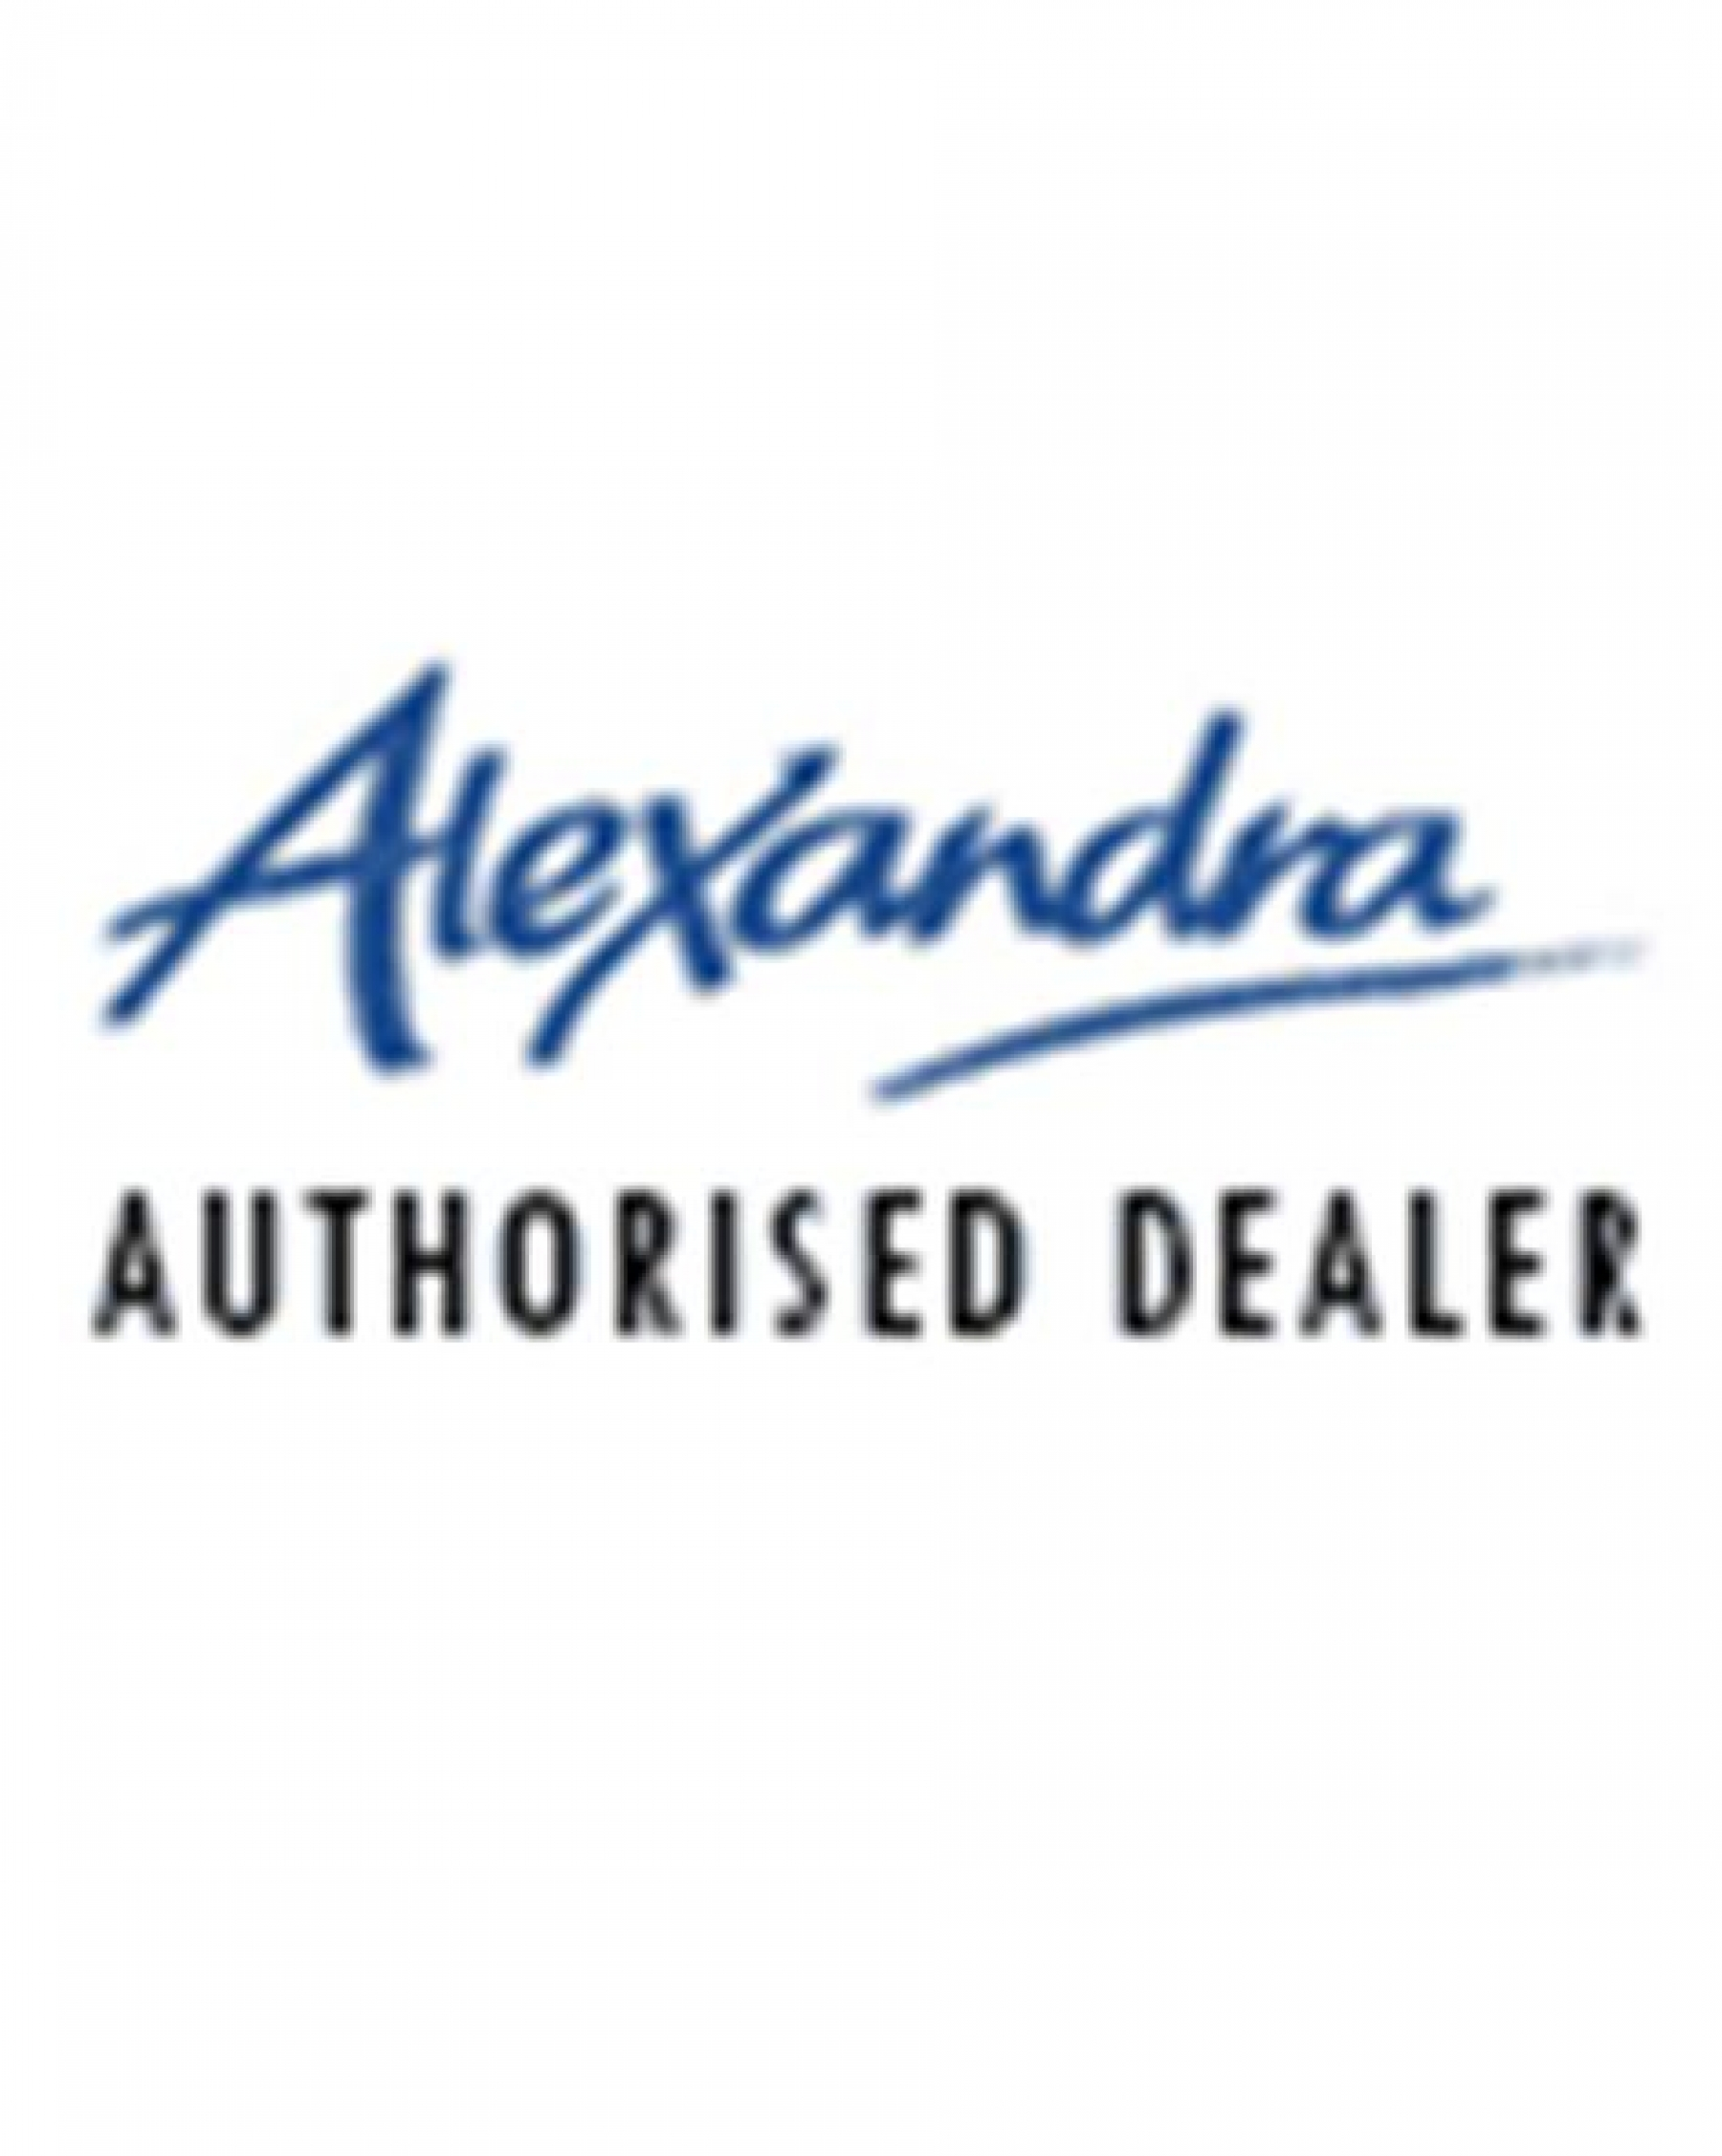 Alexandra Authorised Dealer